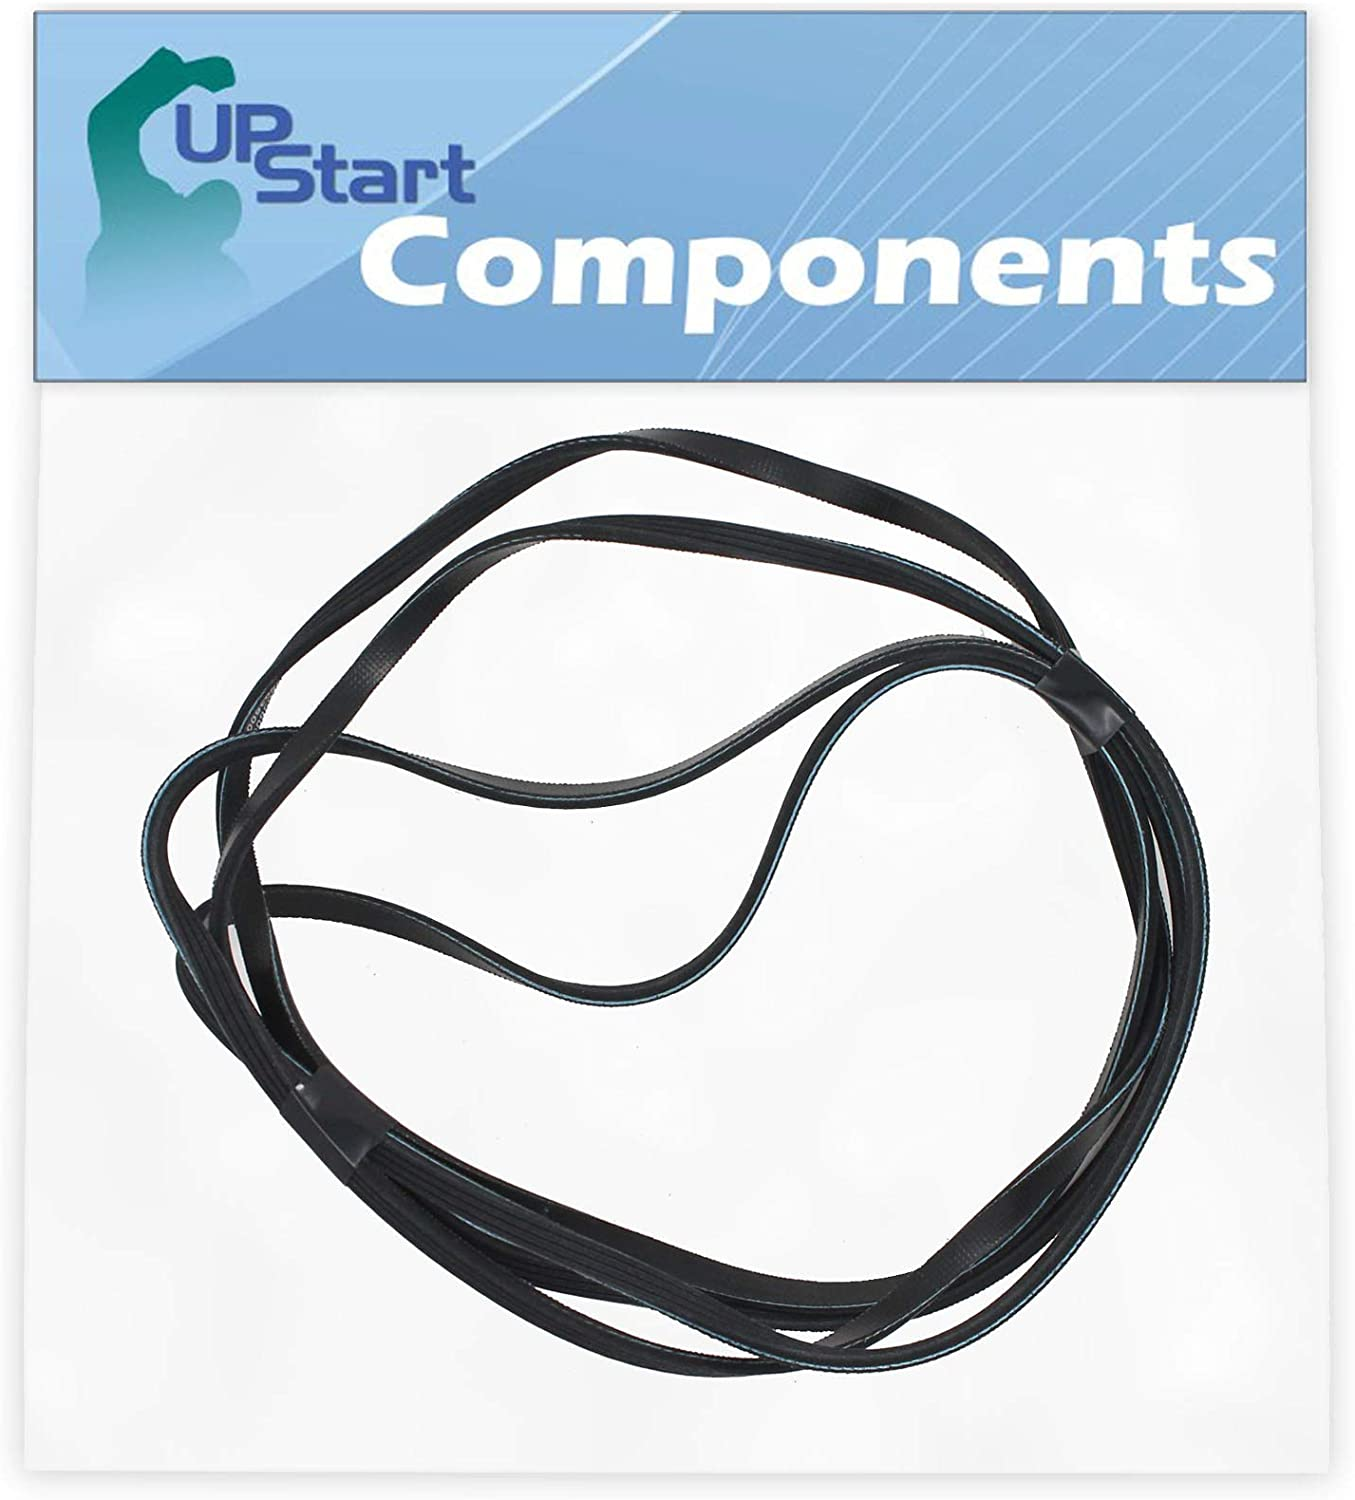 134503600 Dryer Belt Replacement for Frigidaire GLER341AS2 - Compatible with 134163400 Drum Belt